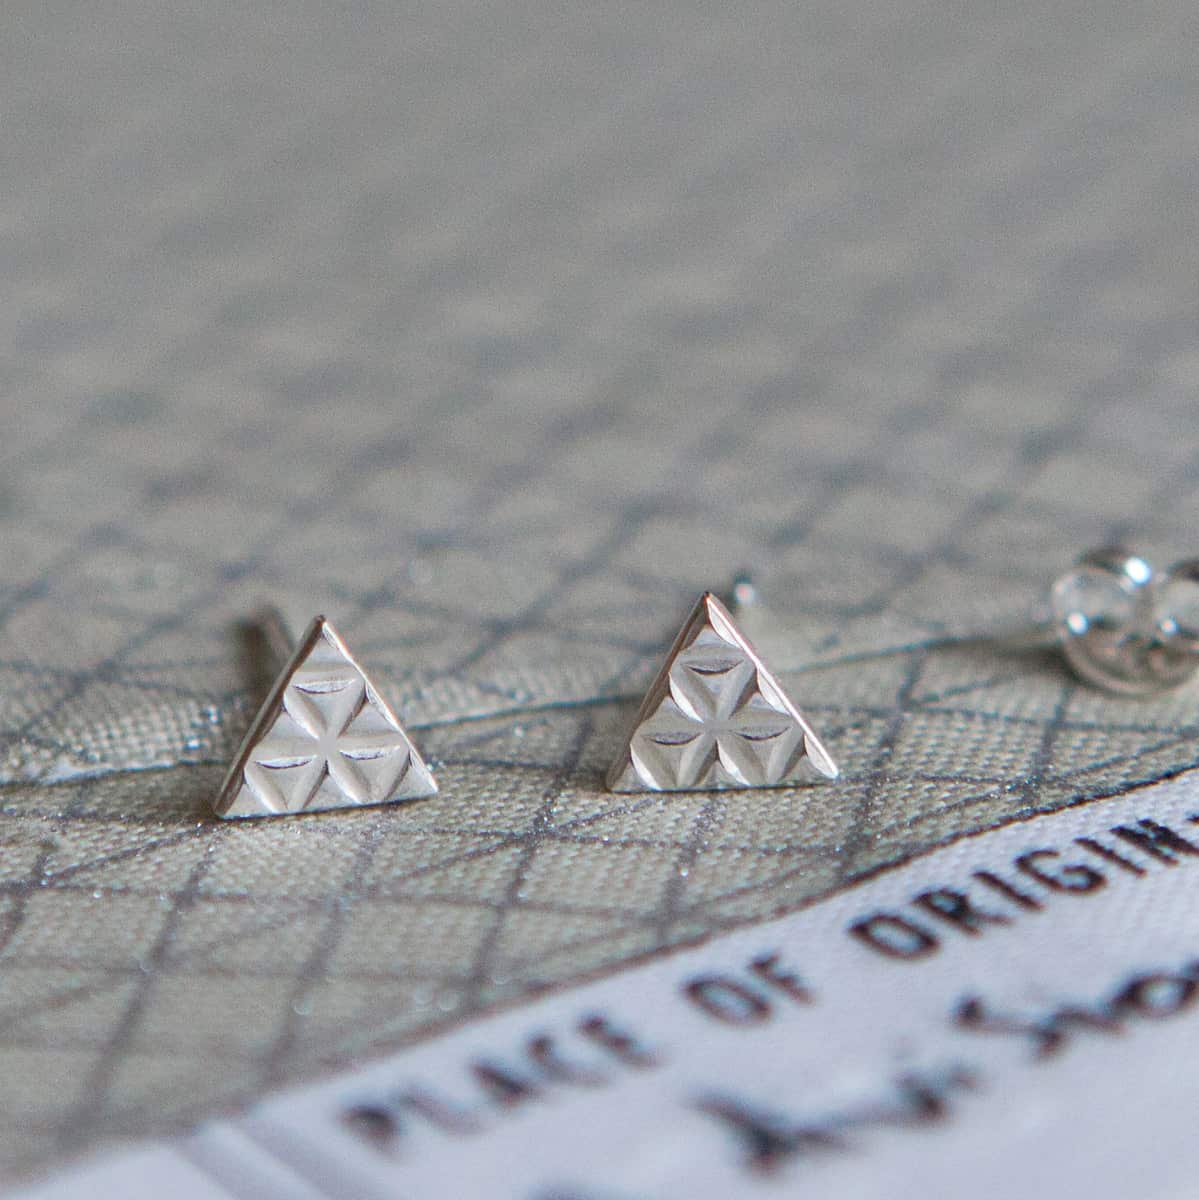 Aztec Earrings - My Latest Magazine Feature - Crafts Beautiful